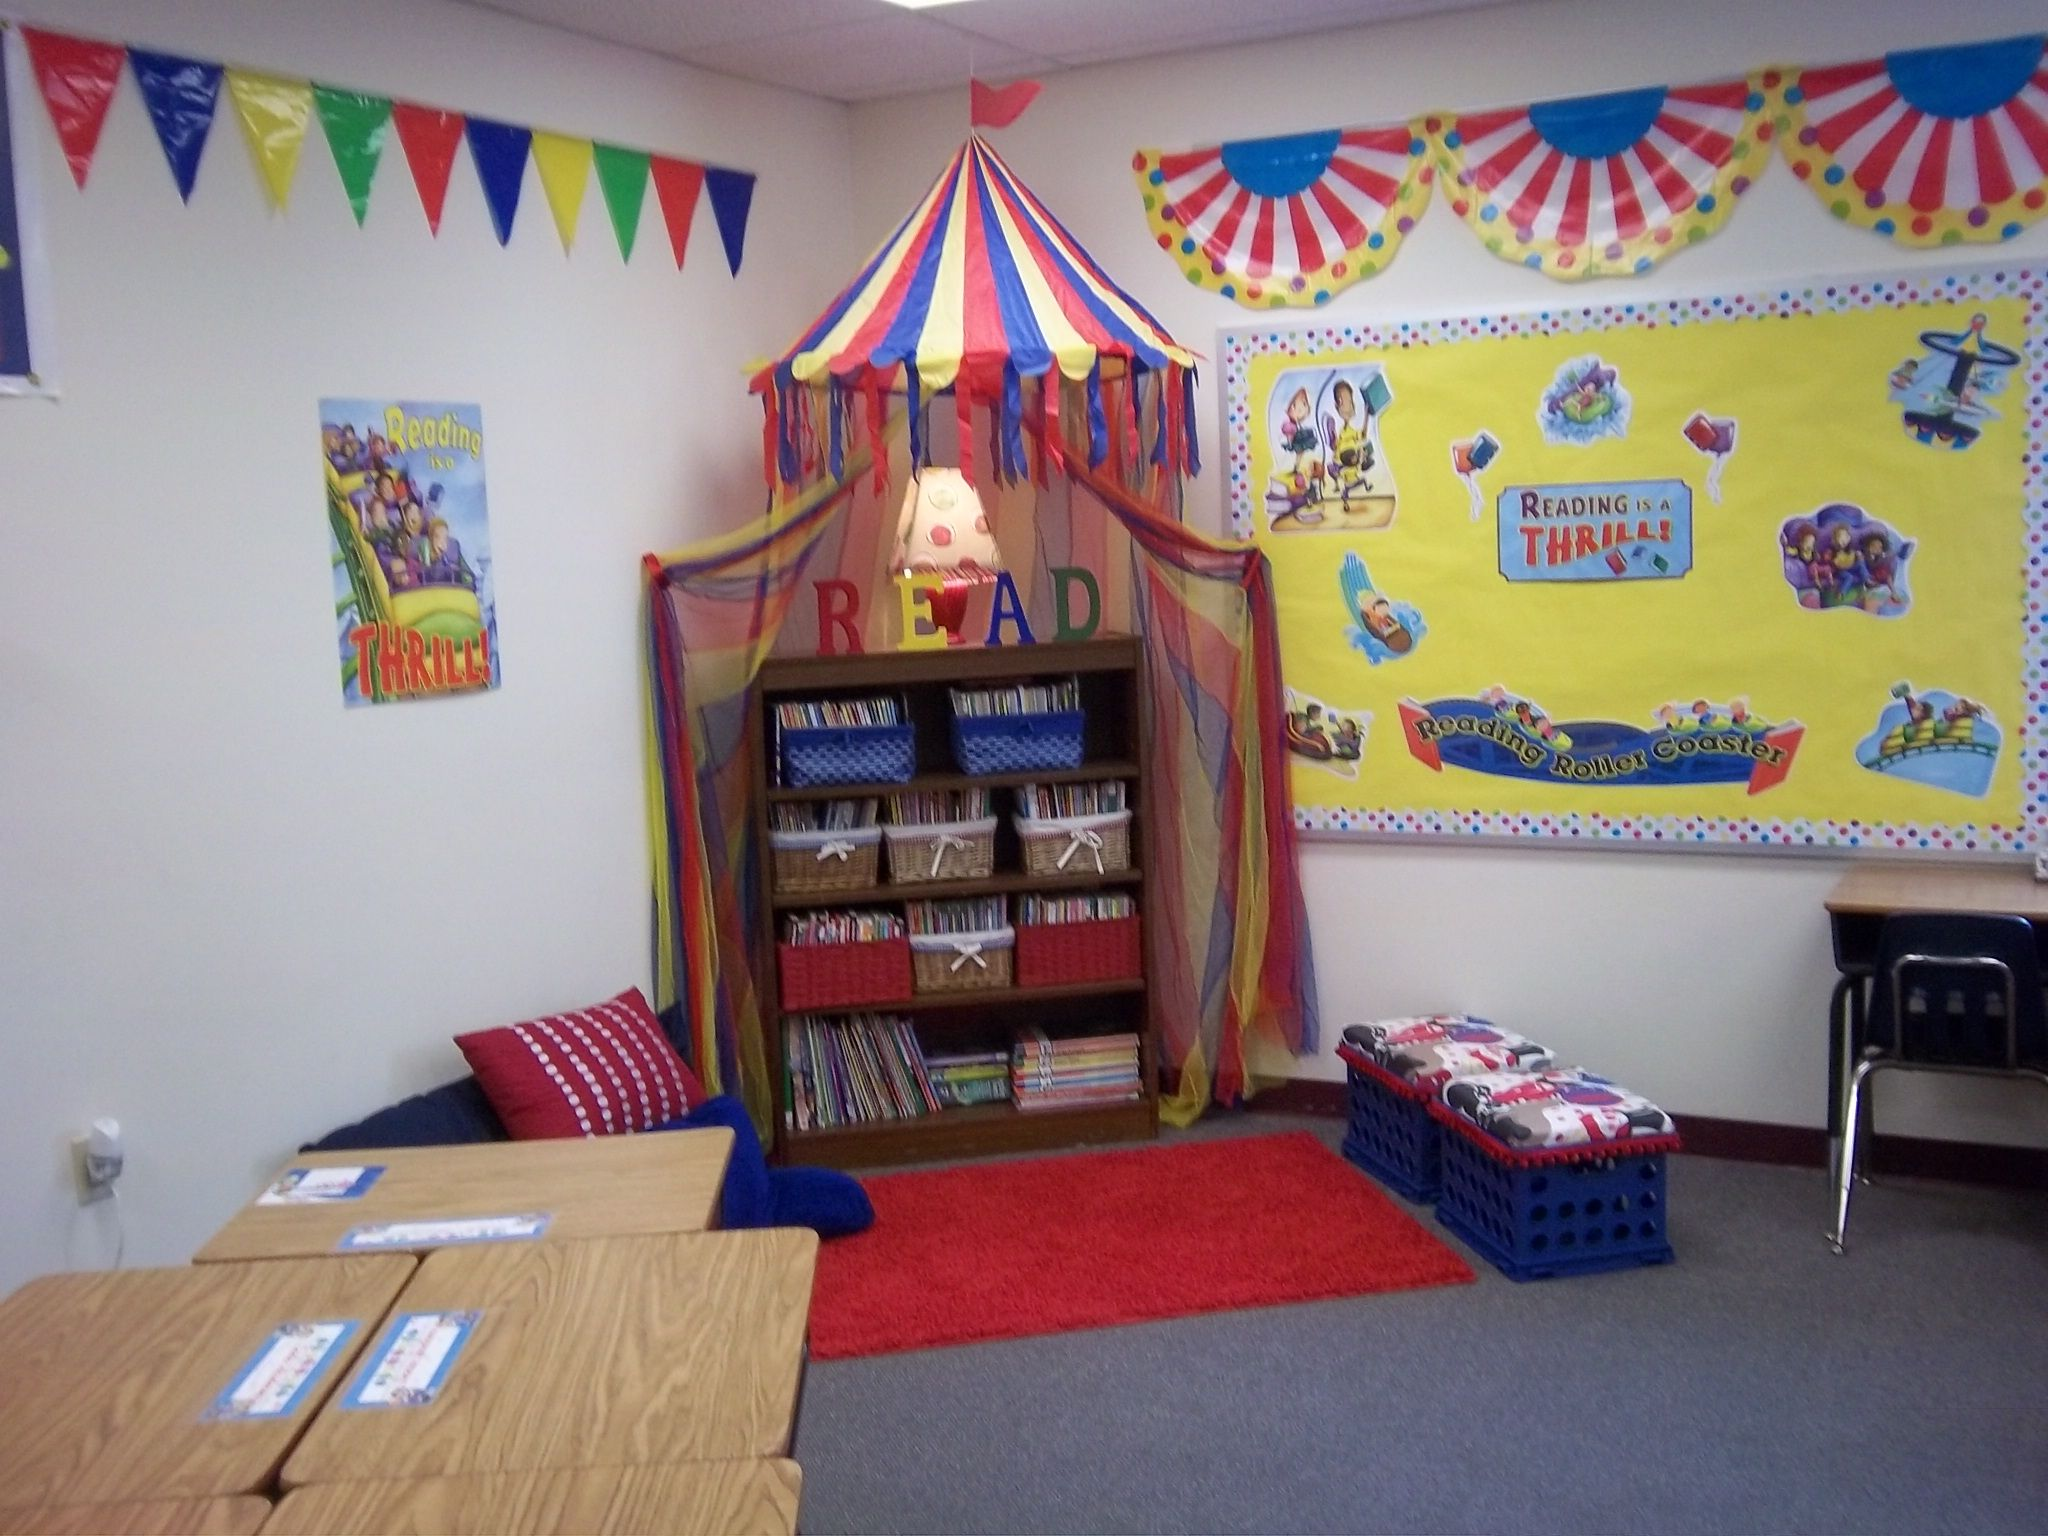 Circus Classroom Decoration Ideas : Carnival themed reading corner classroom decor